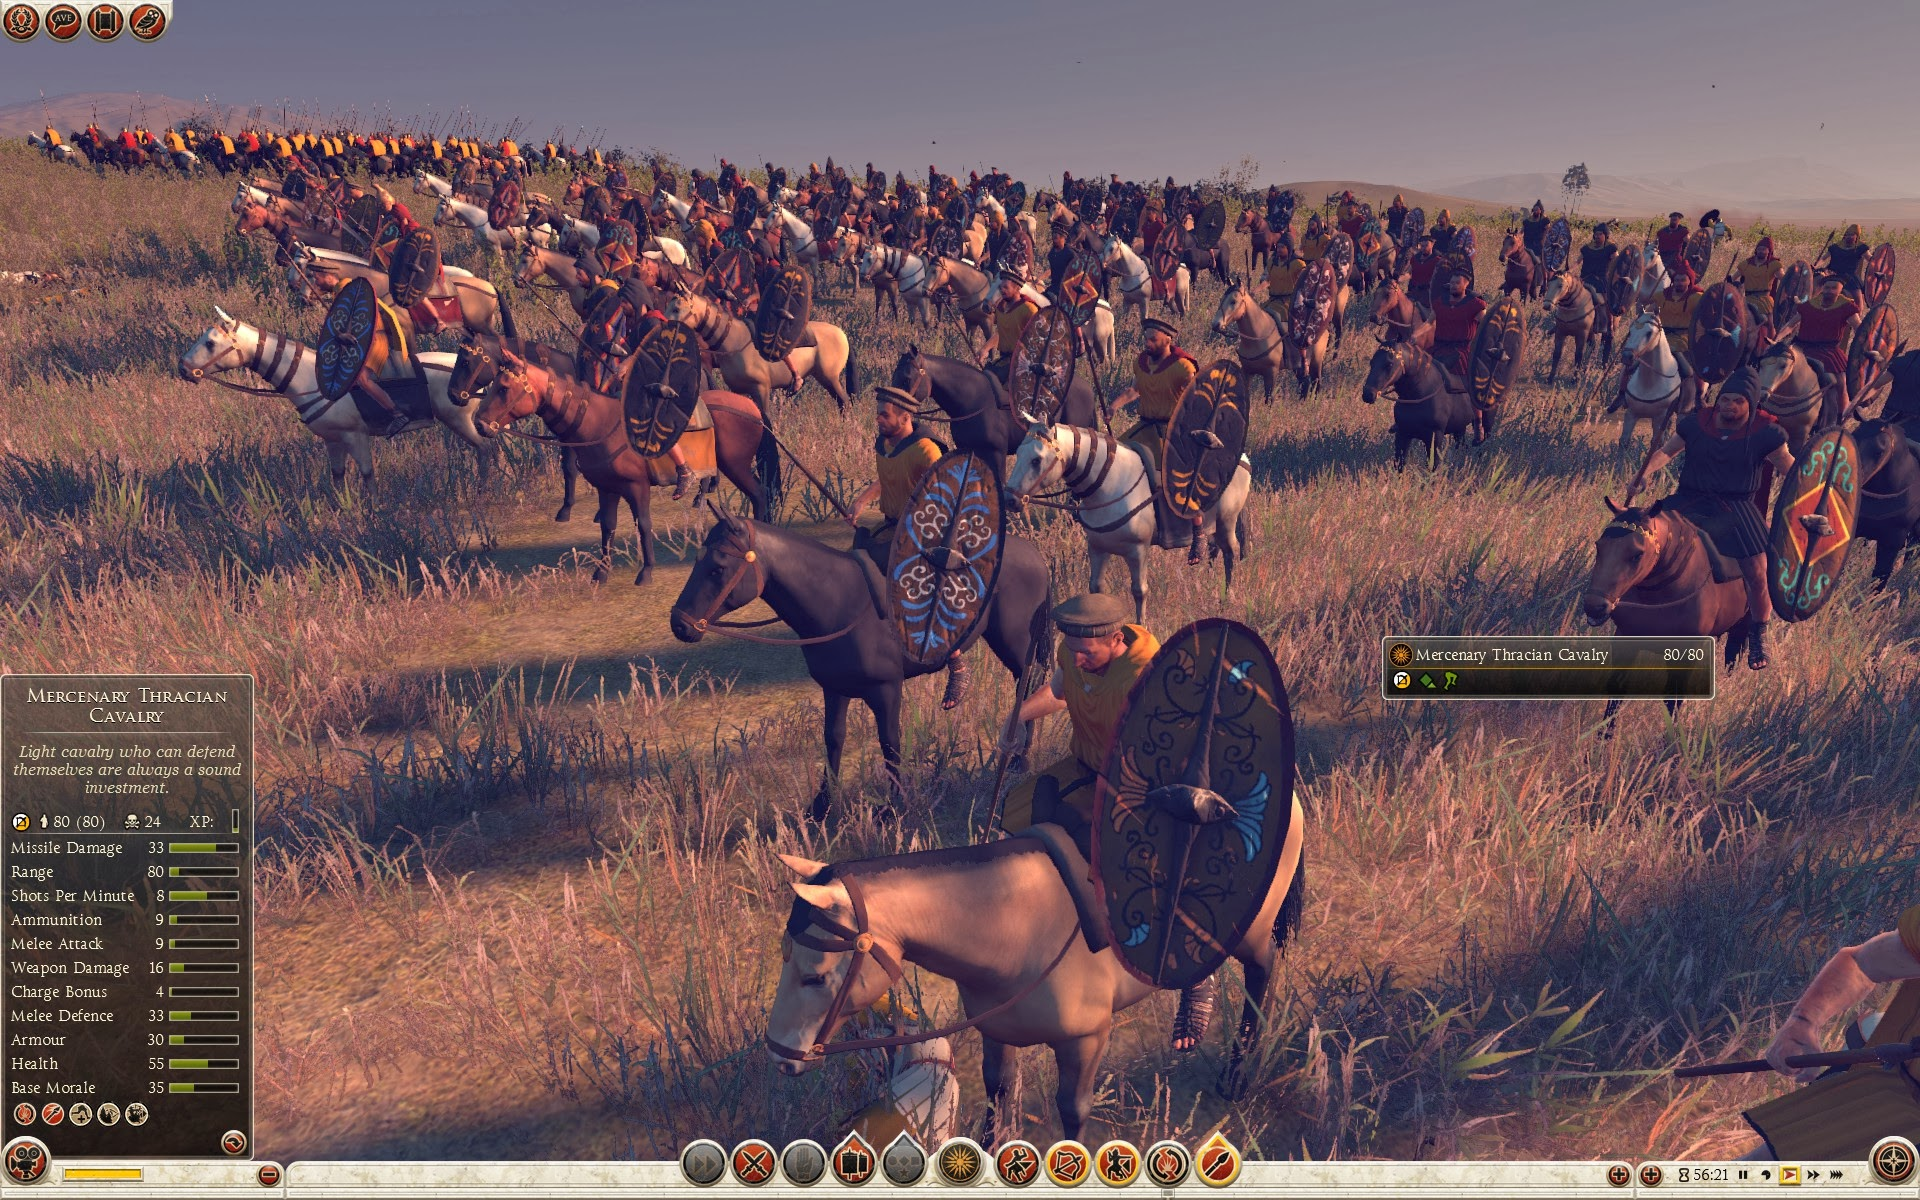 Mercenary Thracian Cavalry